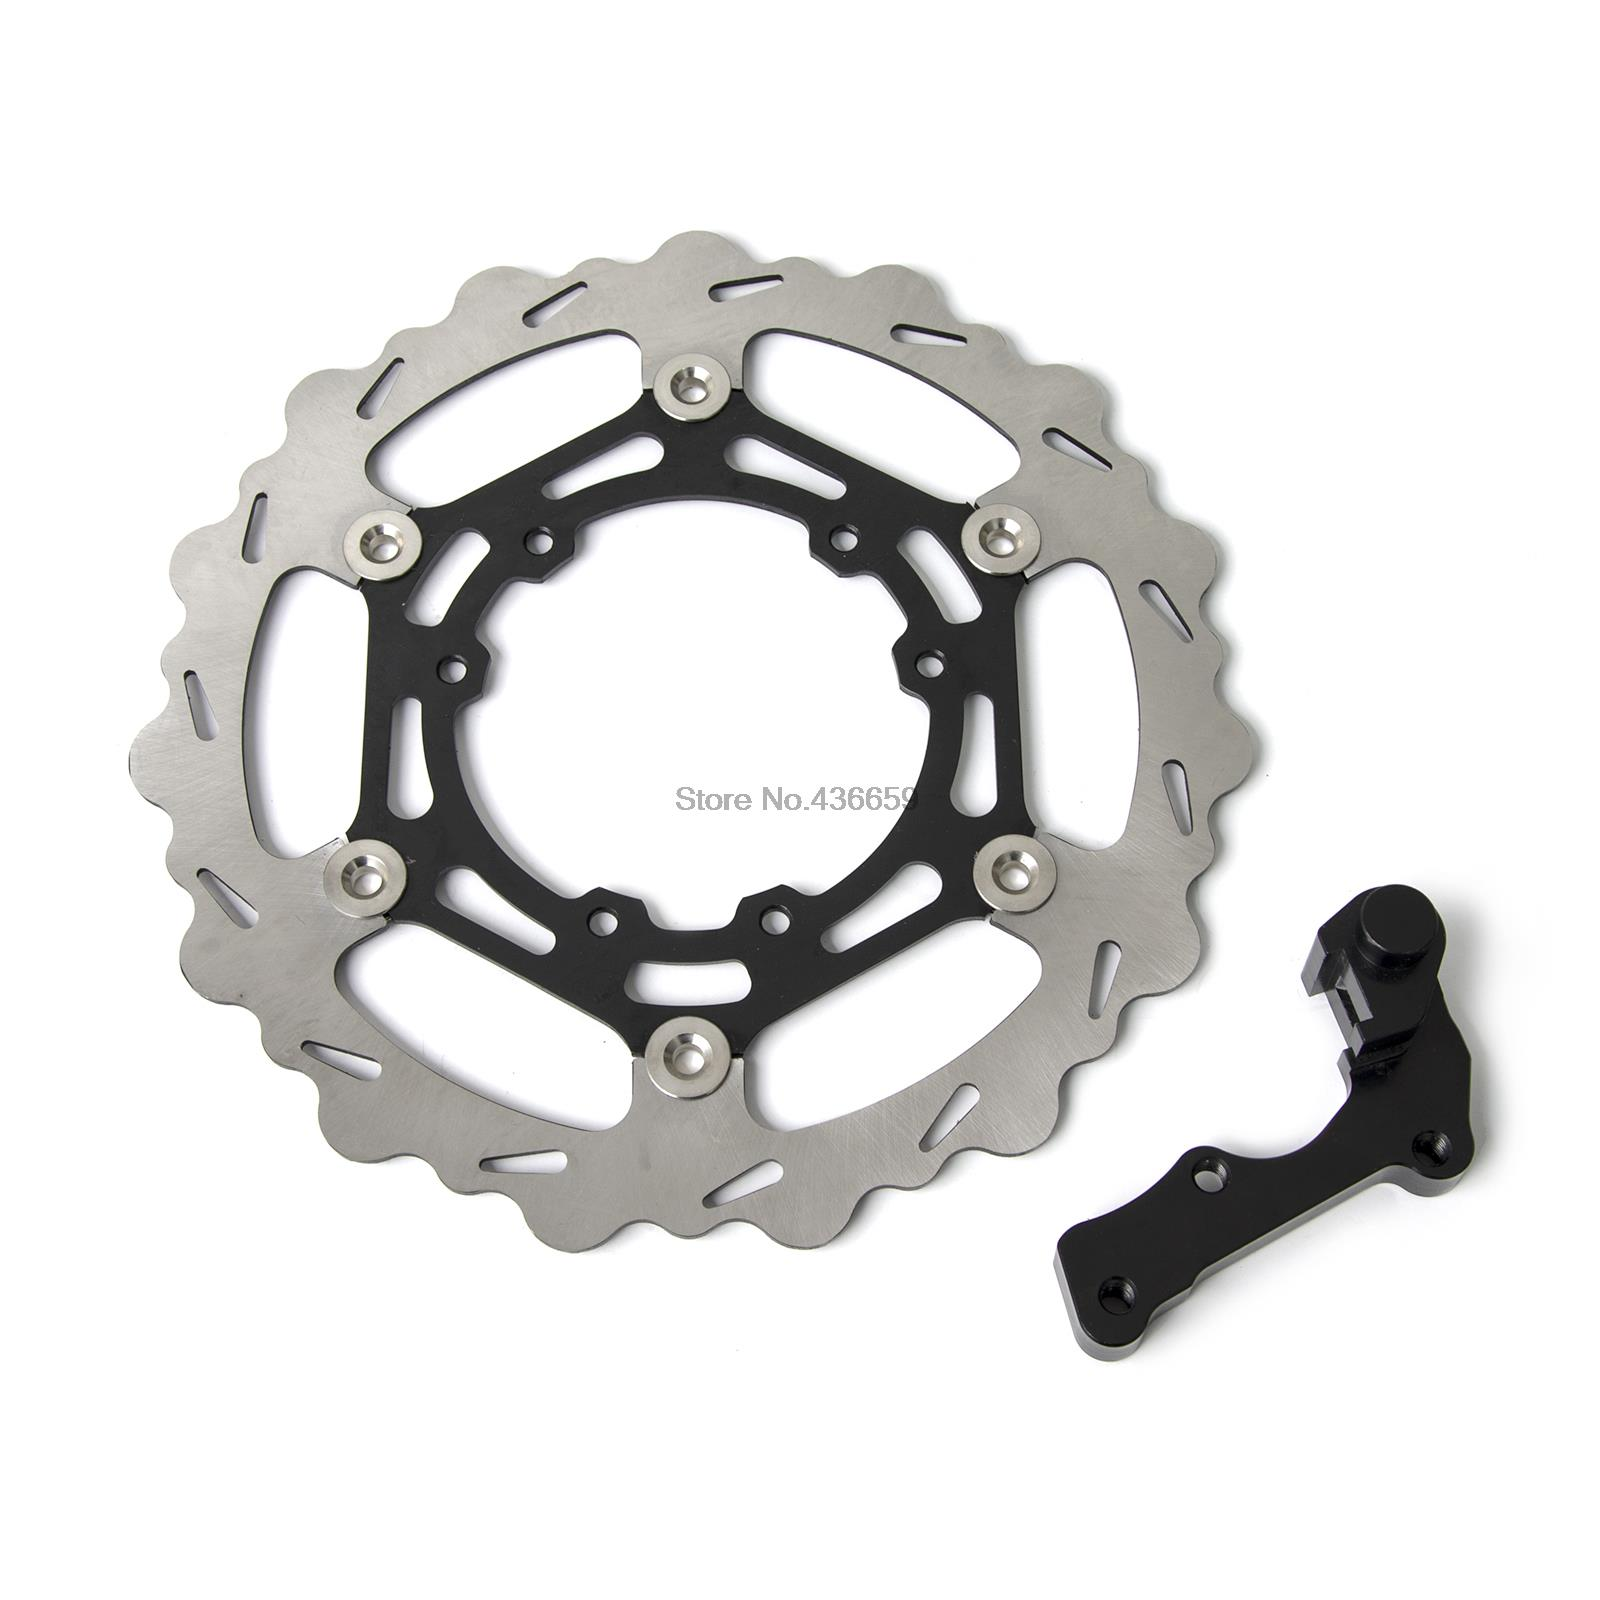 270mm Oversized/MX Front Brake Disc Rotor For Honda CR125E 95 2000 2001 2002 2003 2004 2005 2006 2007 2008 накладки на пороги honda cr v ii 2001 2007 carbon